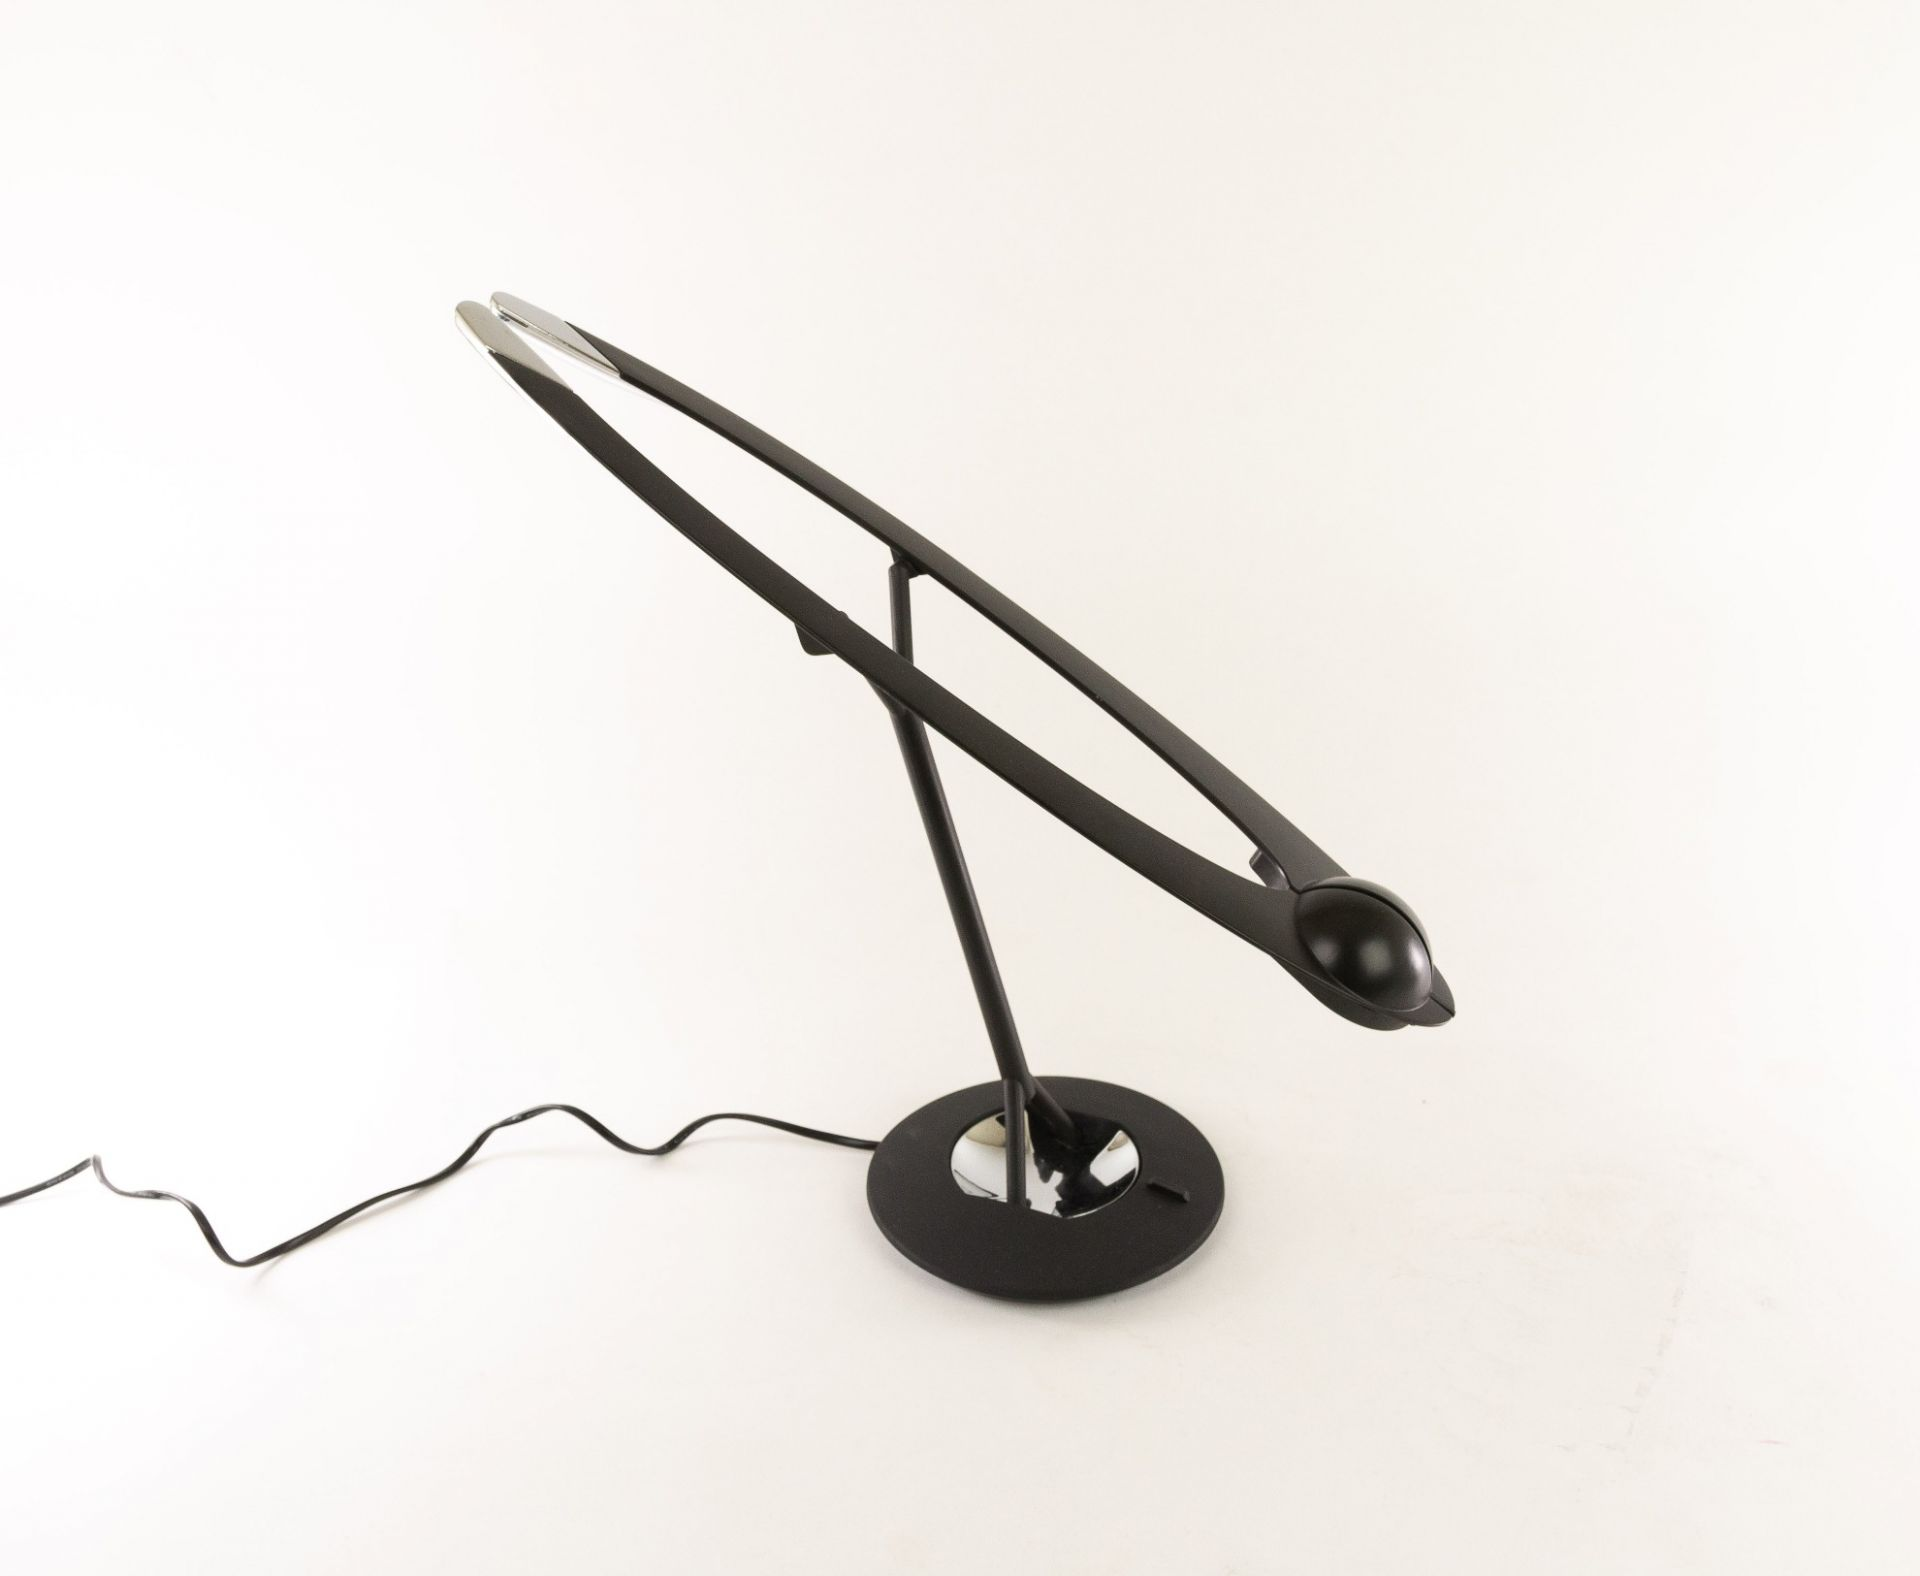 Table lamp Malia by Bruno Gecchelin for Tronconi, 1980s